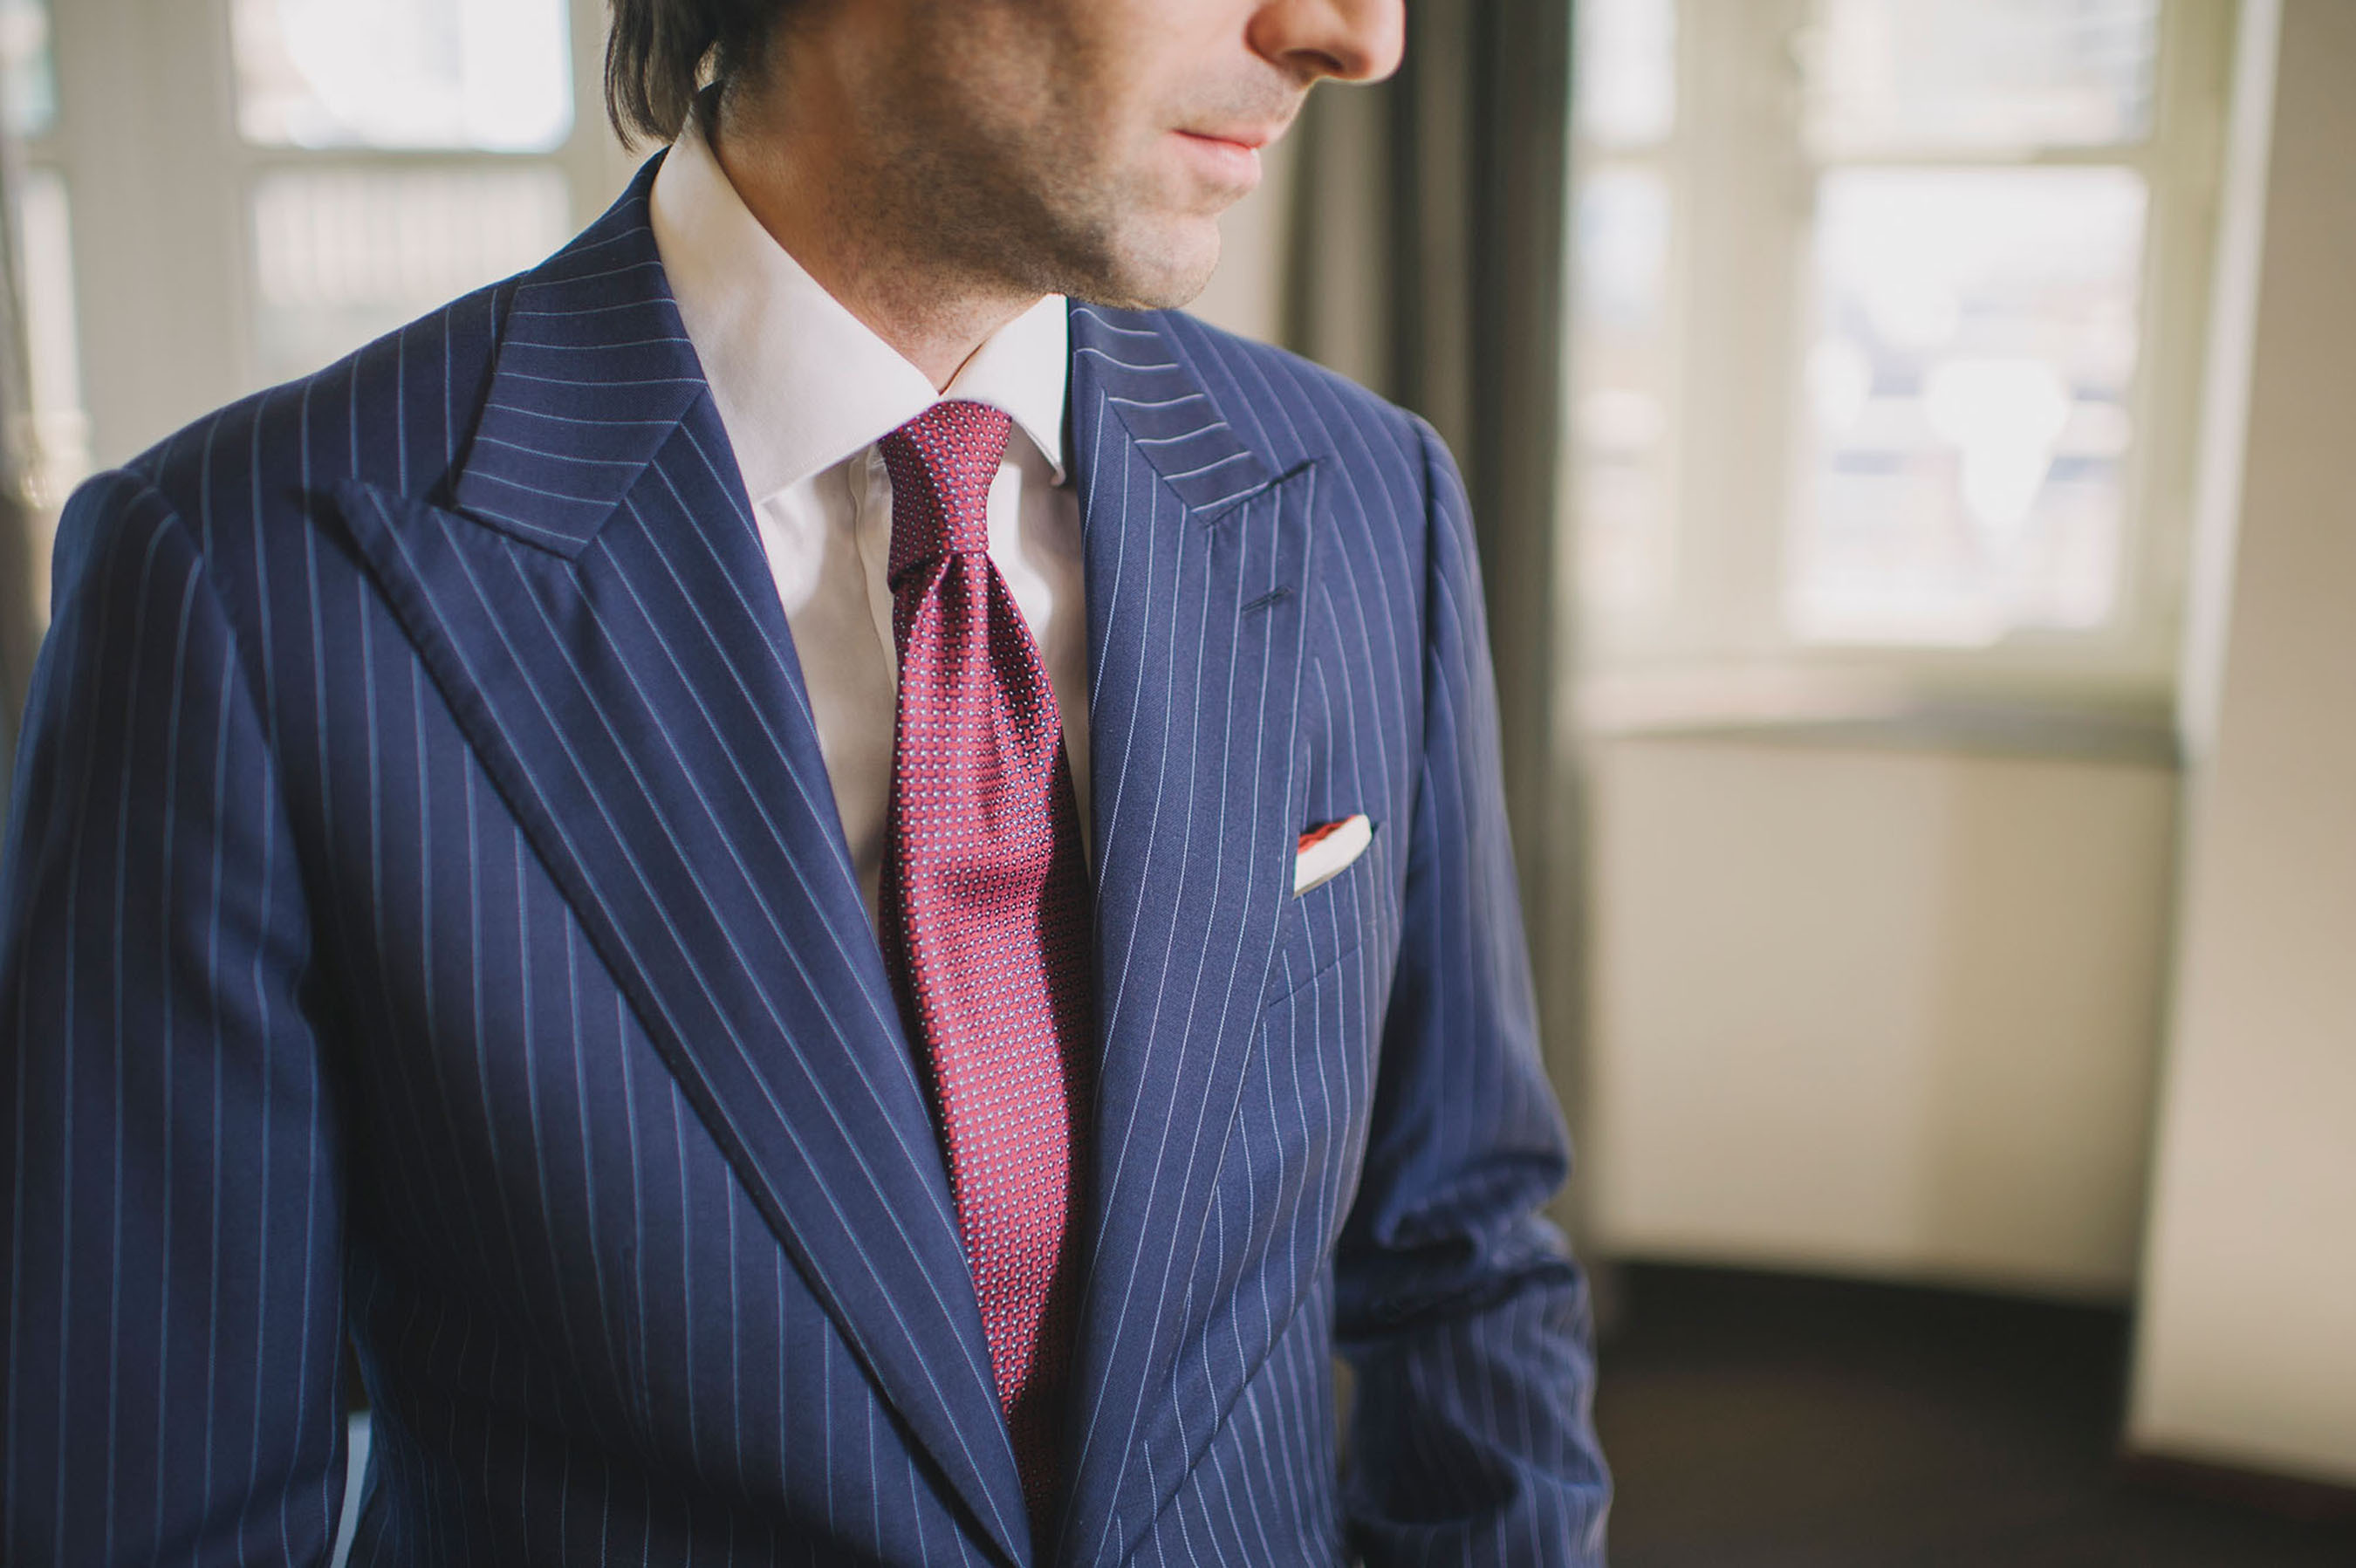 The Garrison Bespoke bulletproof suit is a discreet and stylish alternative to the traditional bulky Kevlar vest. (PRNewsFoto/Garrison Bespoke) (PRNewsFoto/GARRISON BESPOKE)